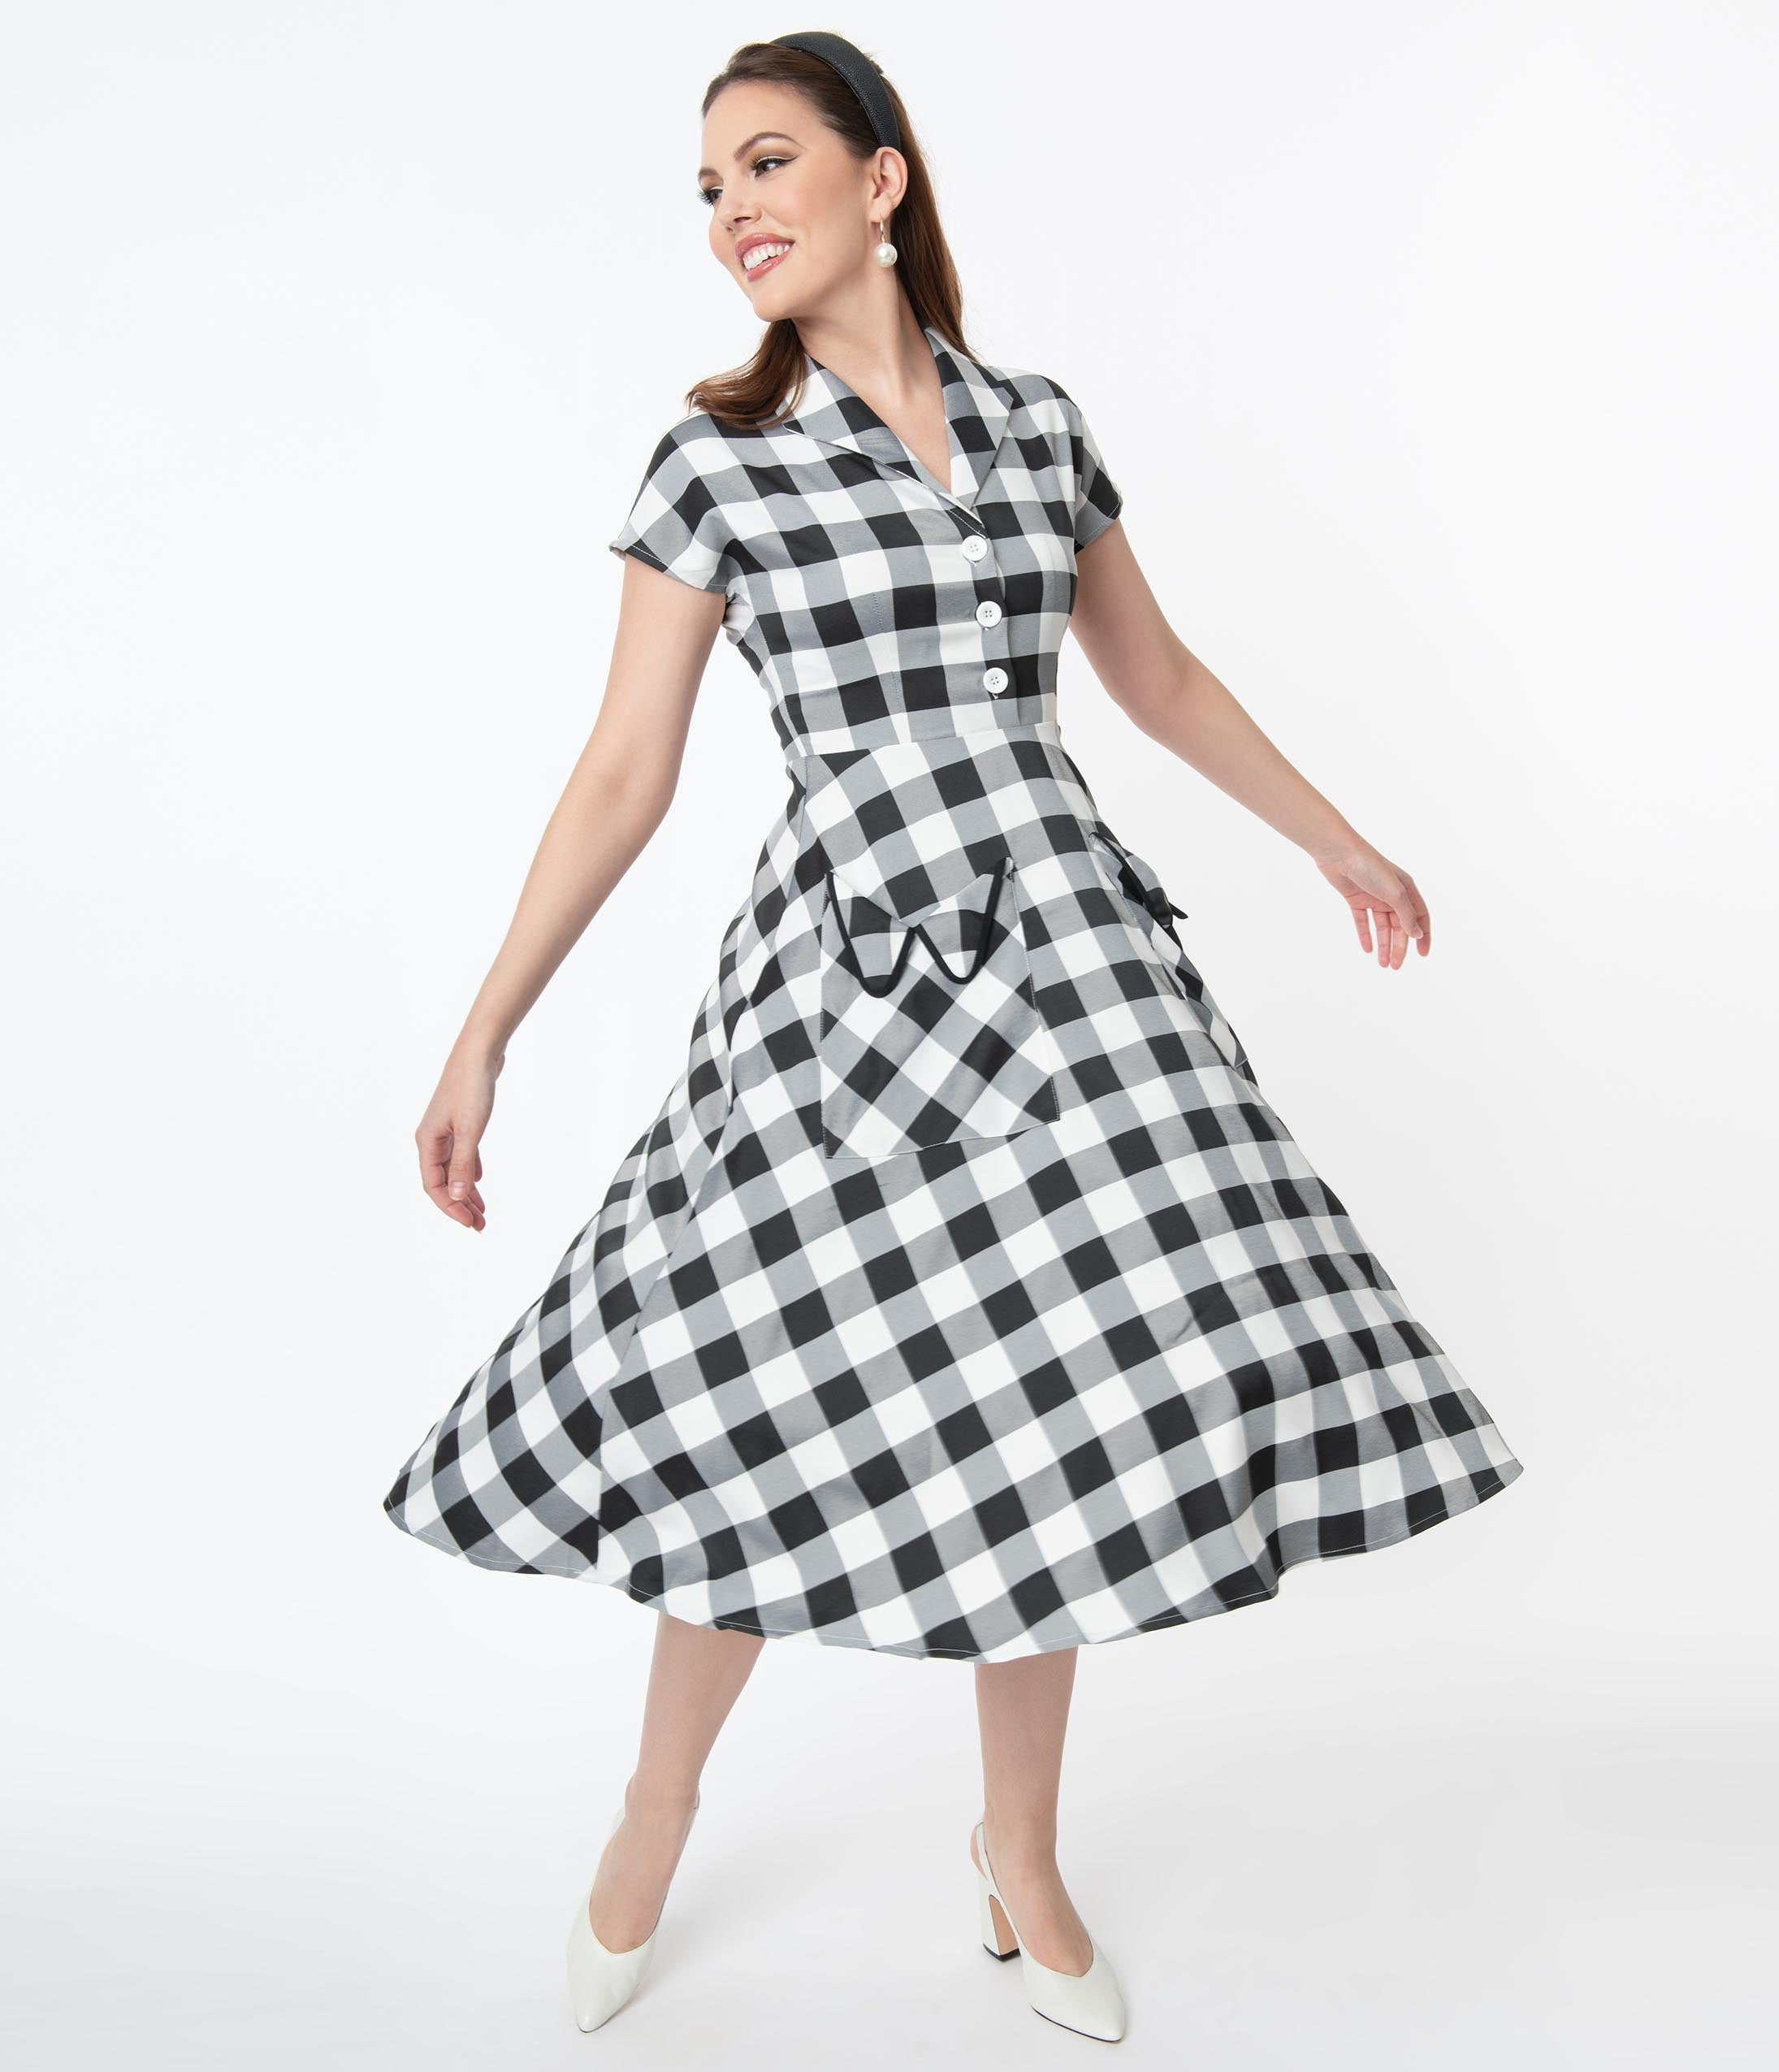 Pin Up Dresses | Pinup Clothing & Fashion Magnolia Place 1950S Style Black  White Gingham Swing Dress $78.00 AT vintagedancer.com